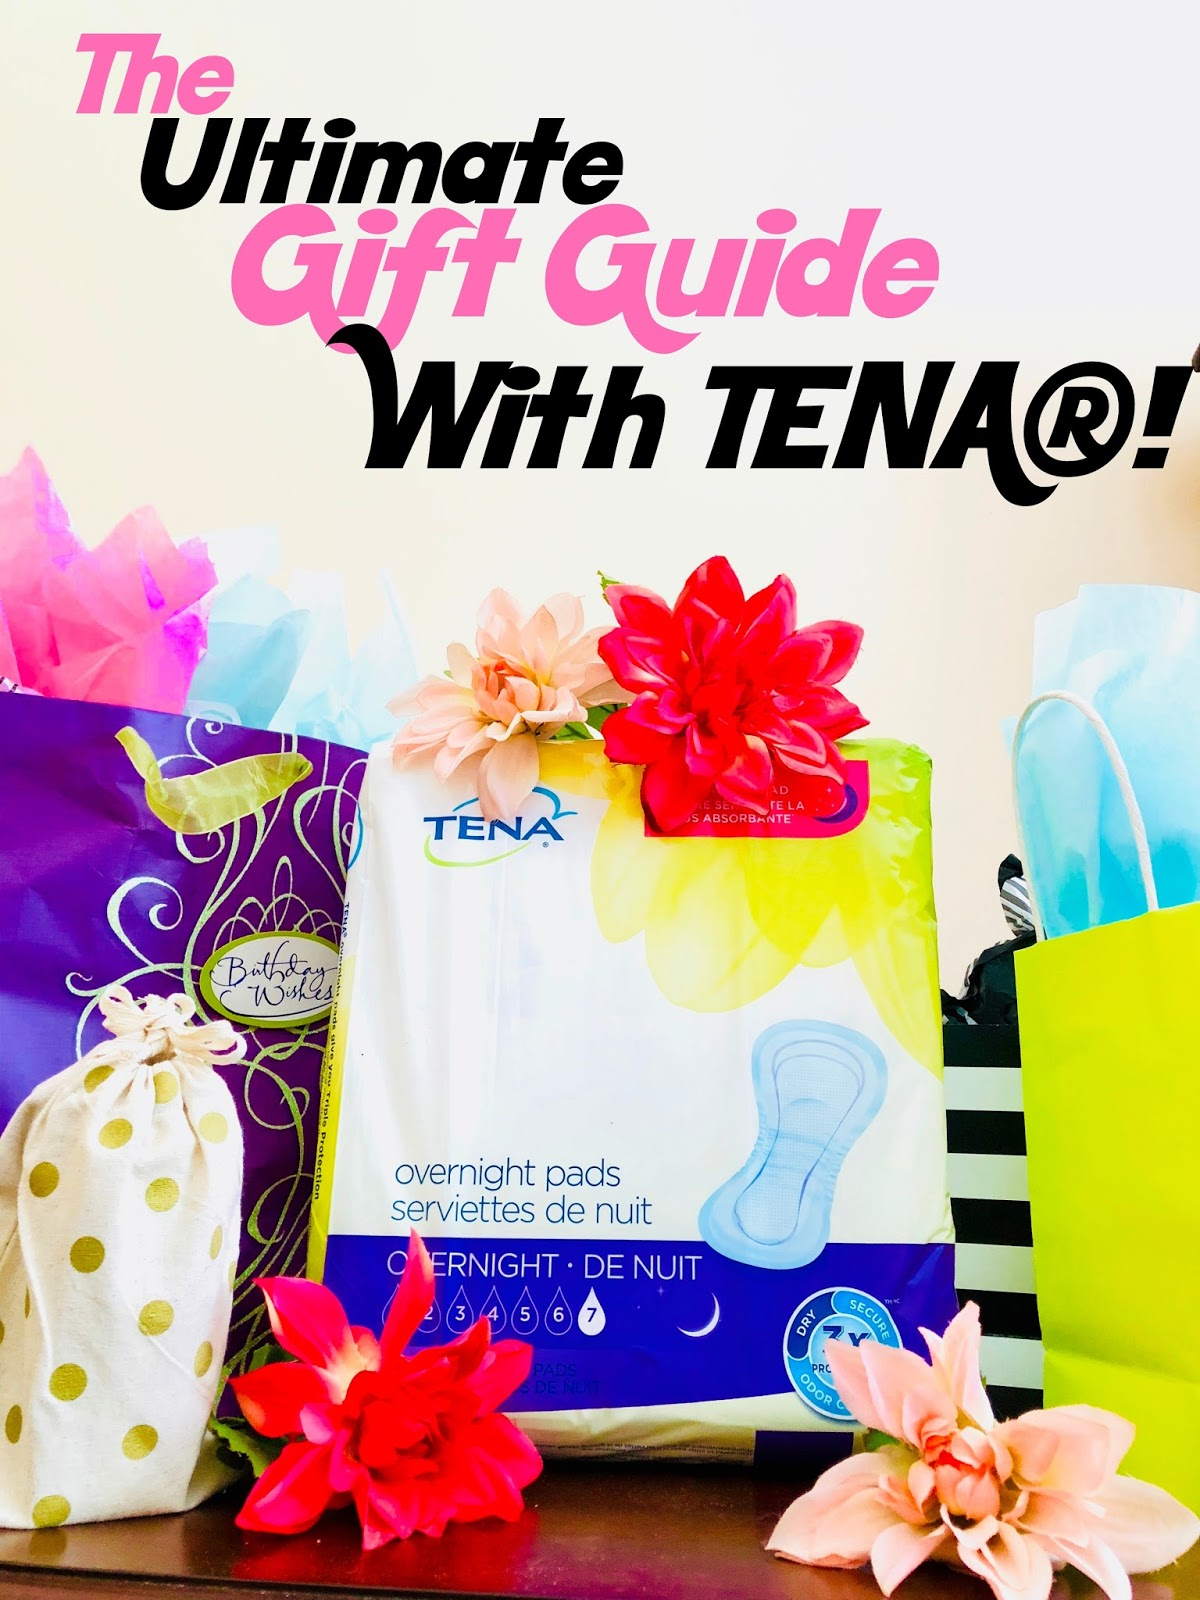 tena brand, tena overnight pads, Tena pads, overnight pads, incontinence, presents for the elderly, elderly gift guide, gift guide,